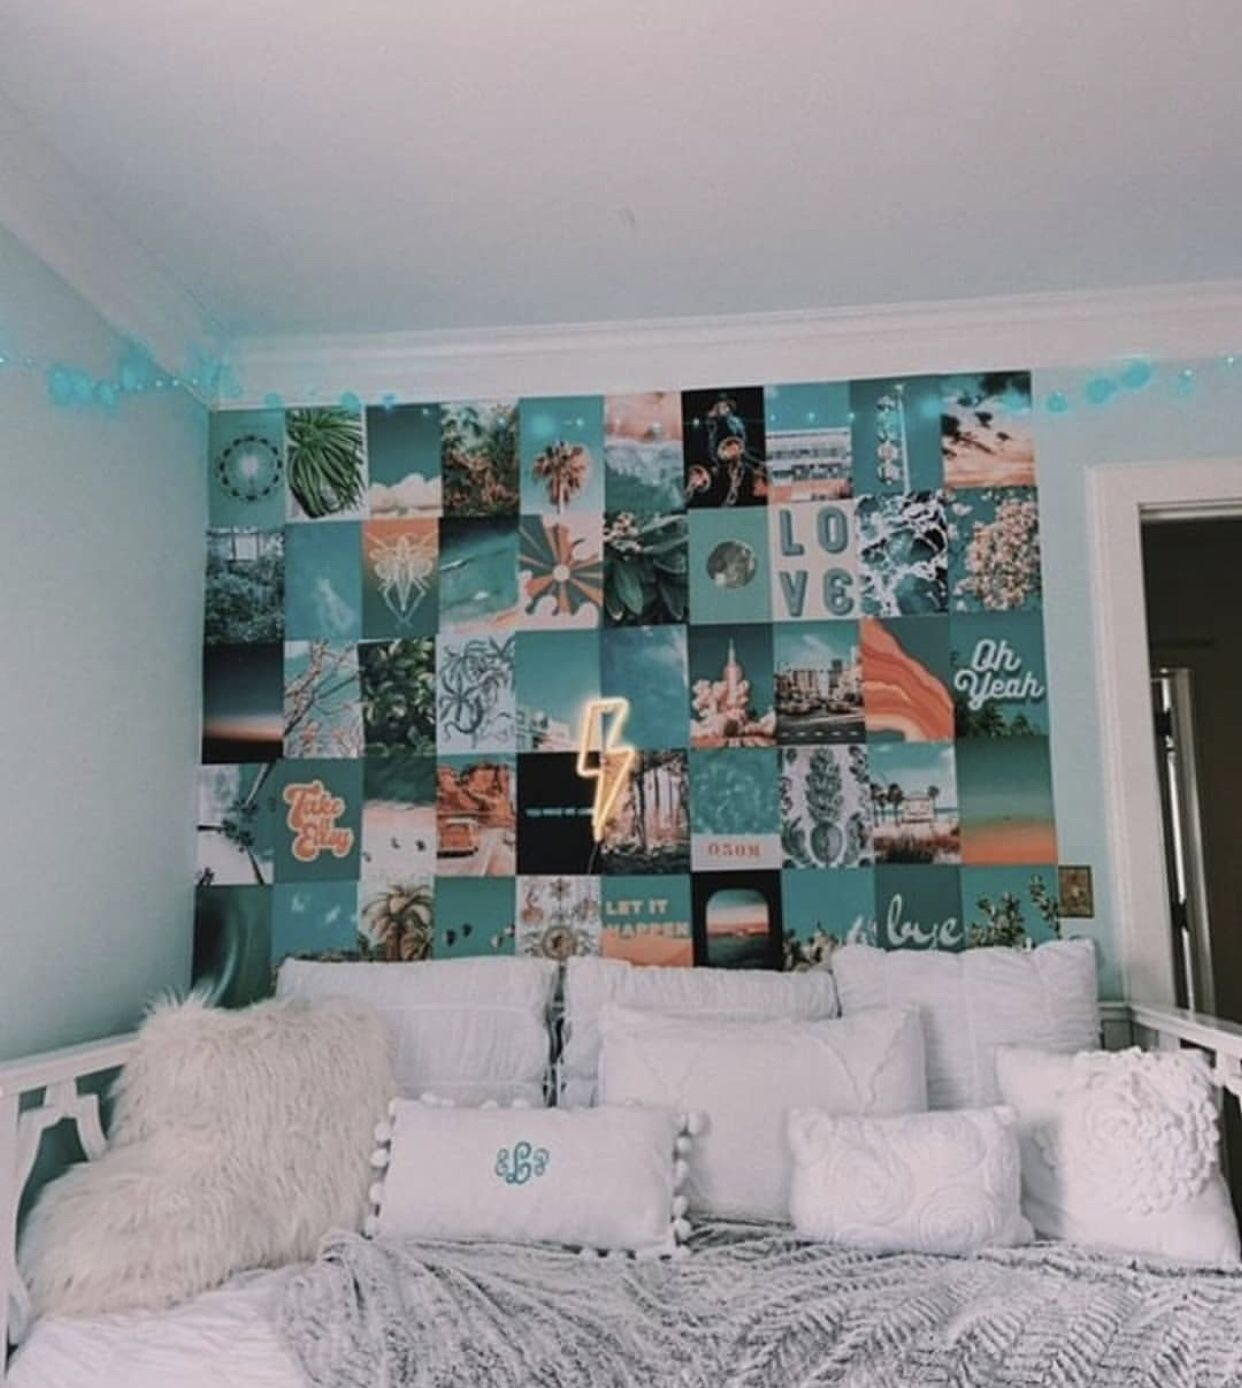 Picture Wall Photo Wall Aesthetic Room Bedroom Vsco Photo Walls Bedroom Walls Room Girl Bedroom Decor